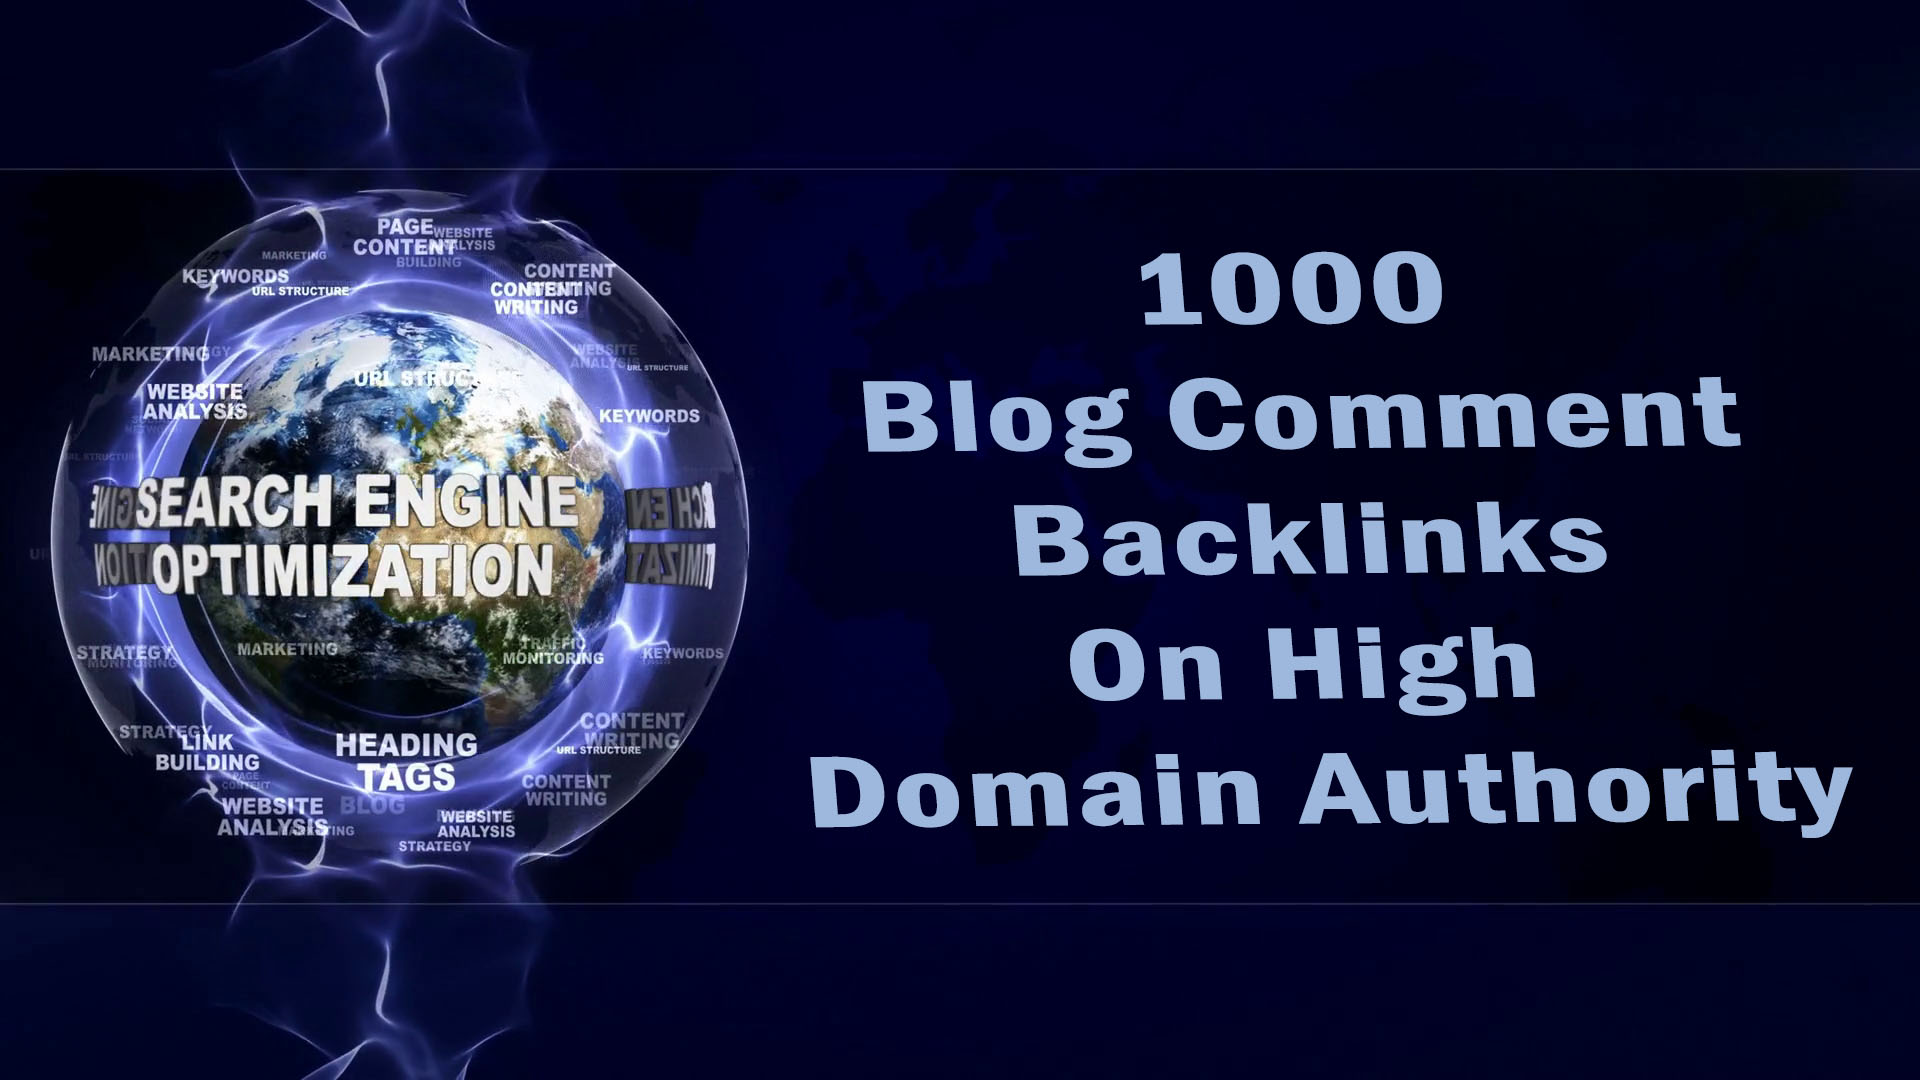 Get 1000 Blog Comment Backlinks With High Domain Authority